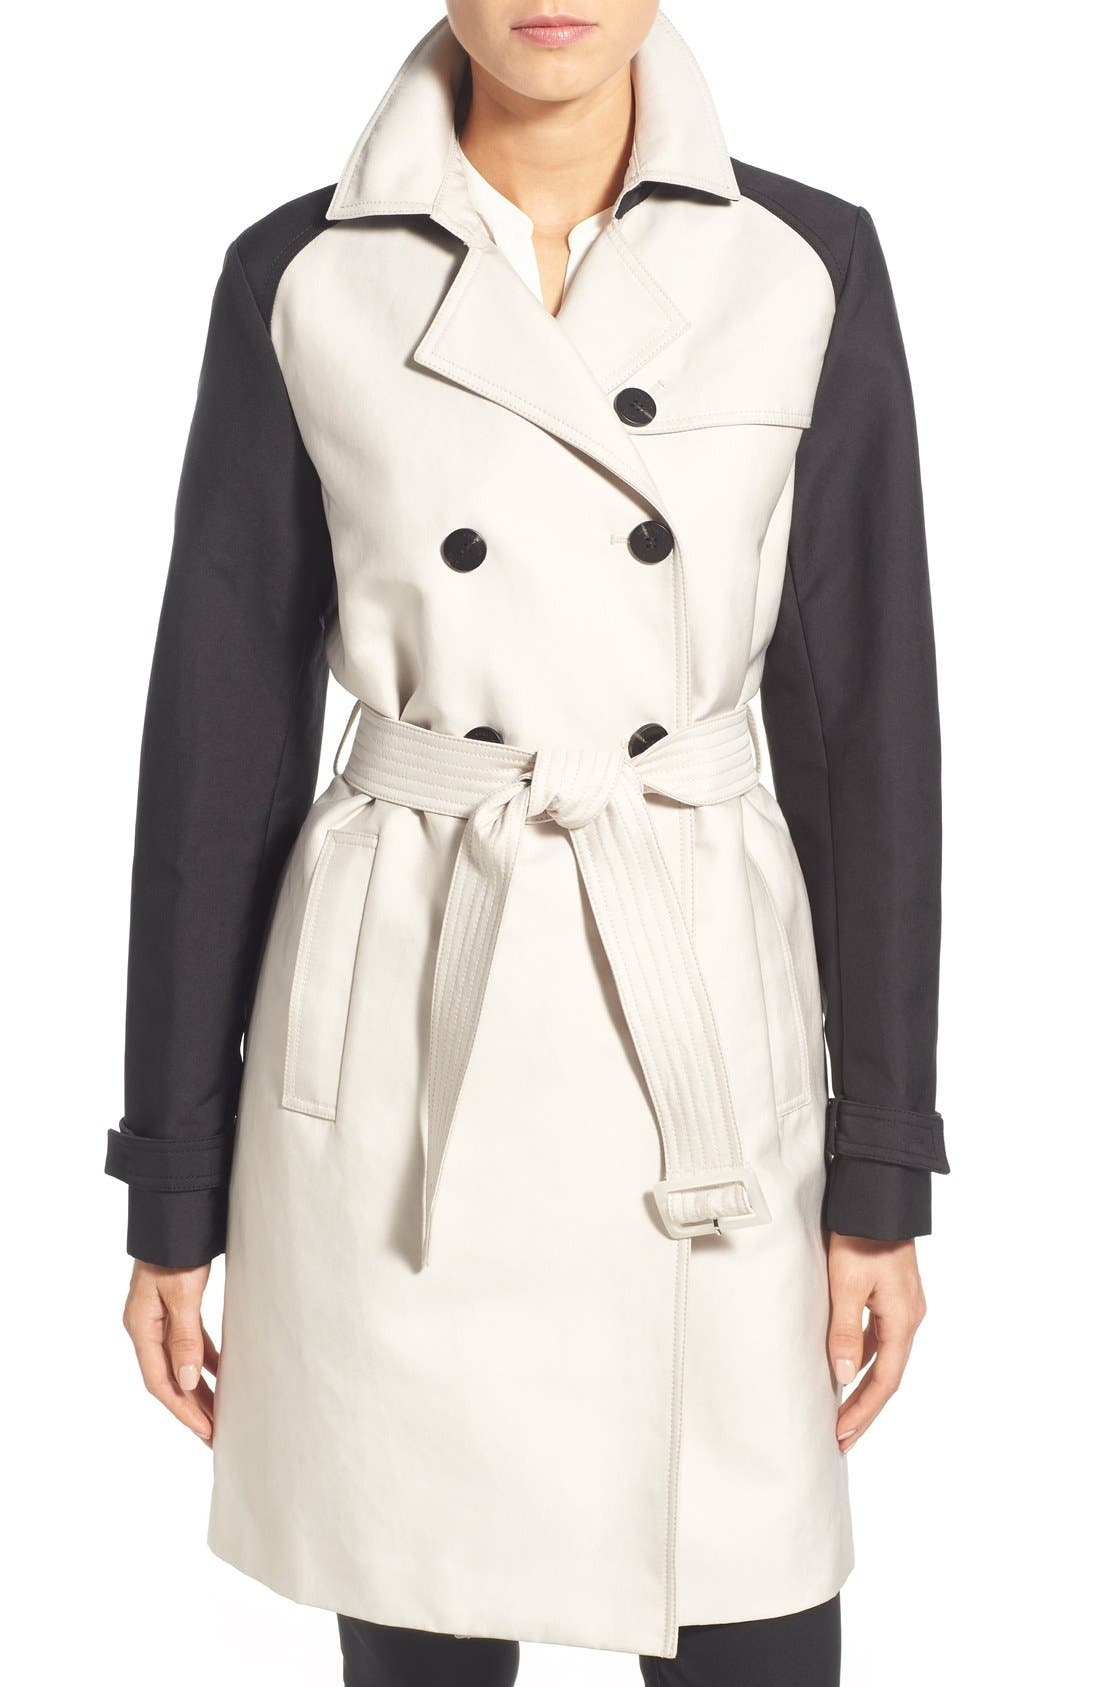 Alternate Image 1 Selected - Vera Wang Contrast Sleeve Trench Coat